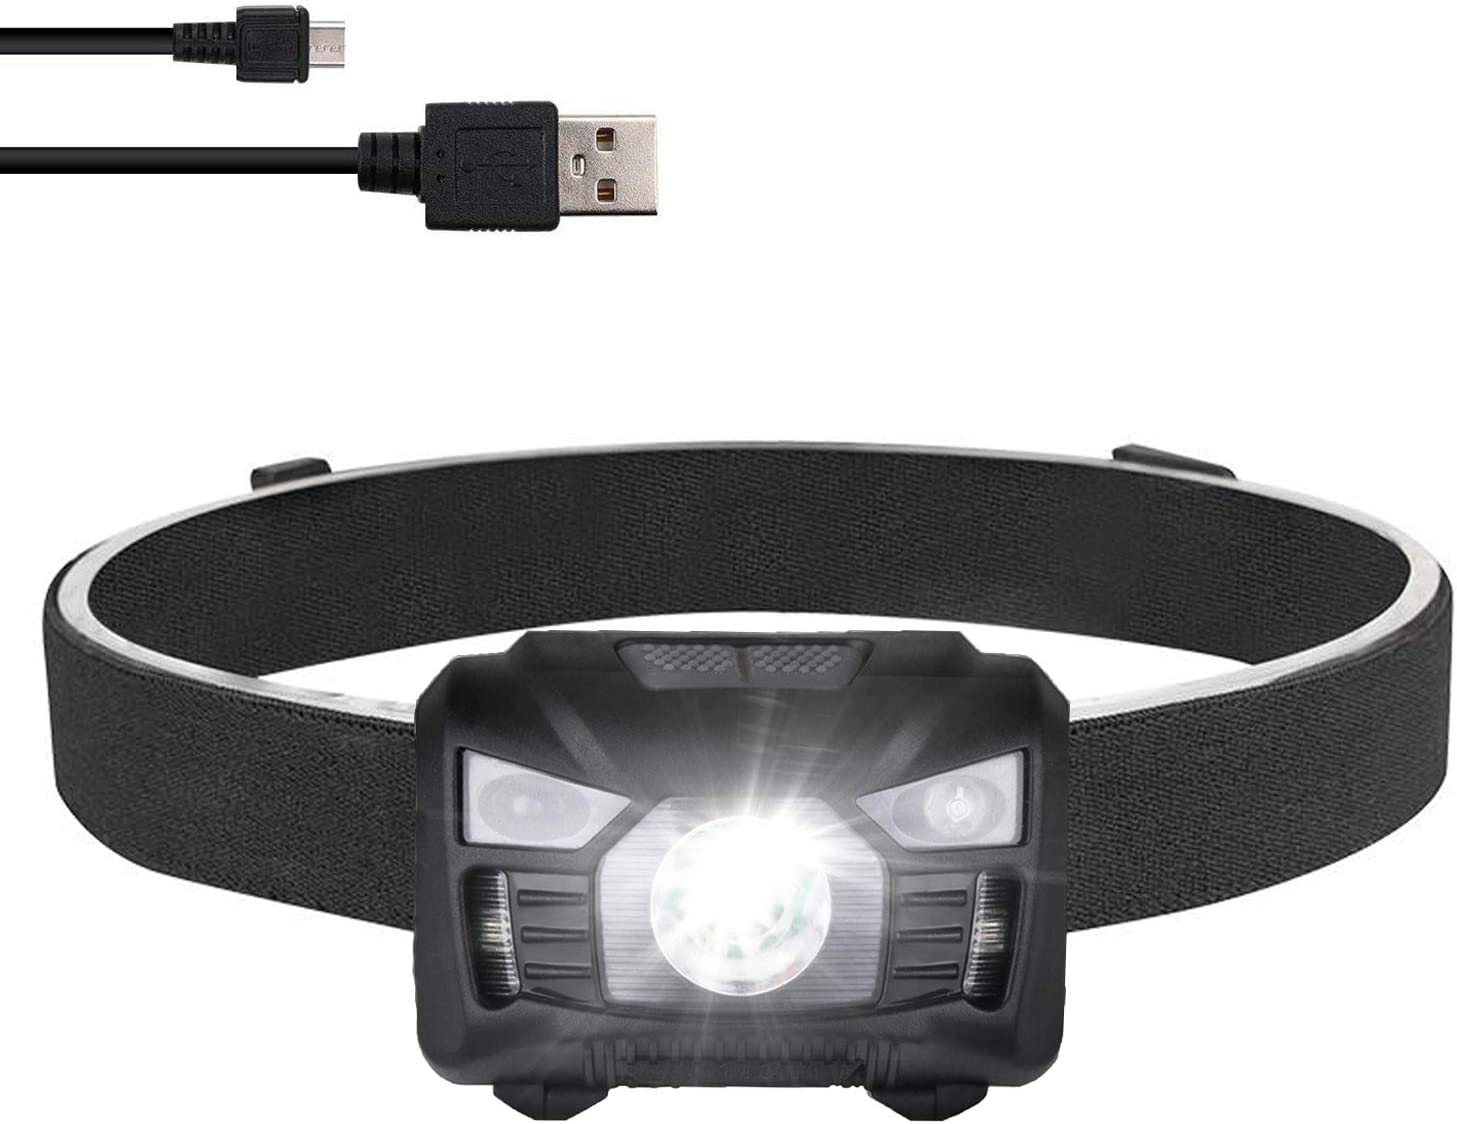 three trees Rechargeable Headlamp LED Flashilght – high Lumen,Brightest White Cree LED with RedLight,5 Modes for Walking,Waterproof,with USB Cable Directly,Adjustable Headband,Batteries Included